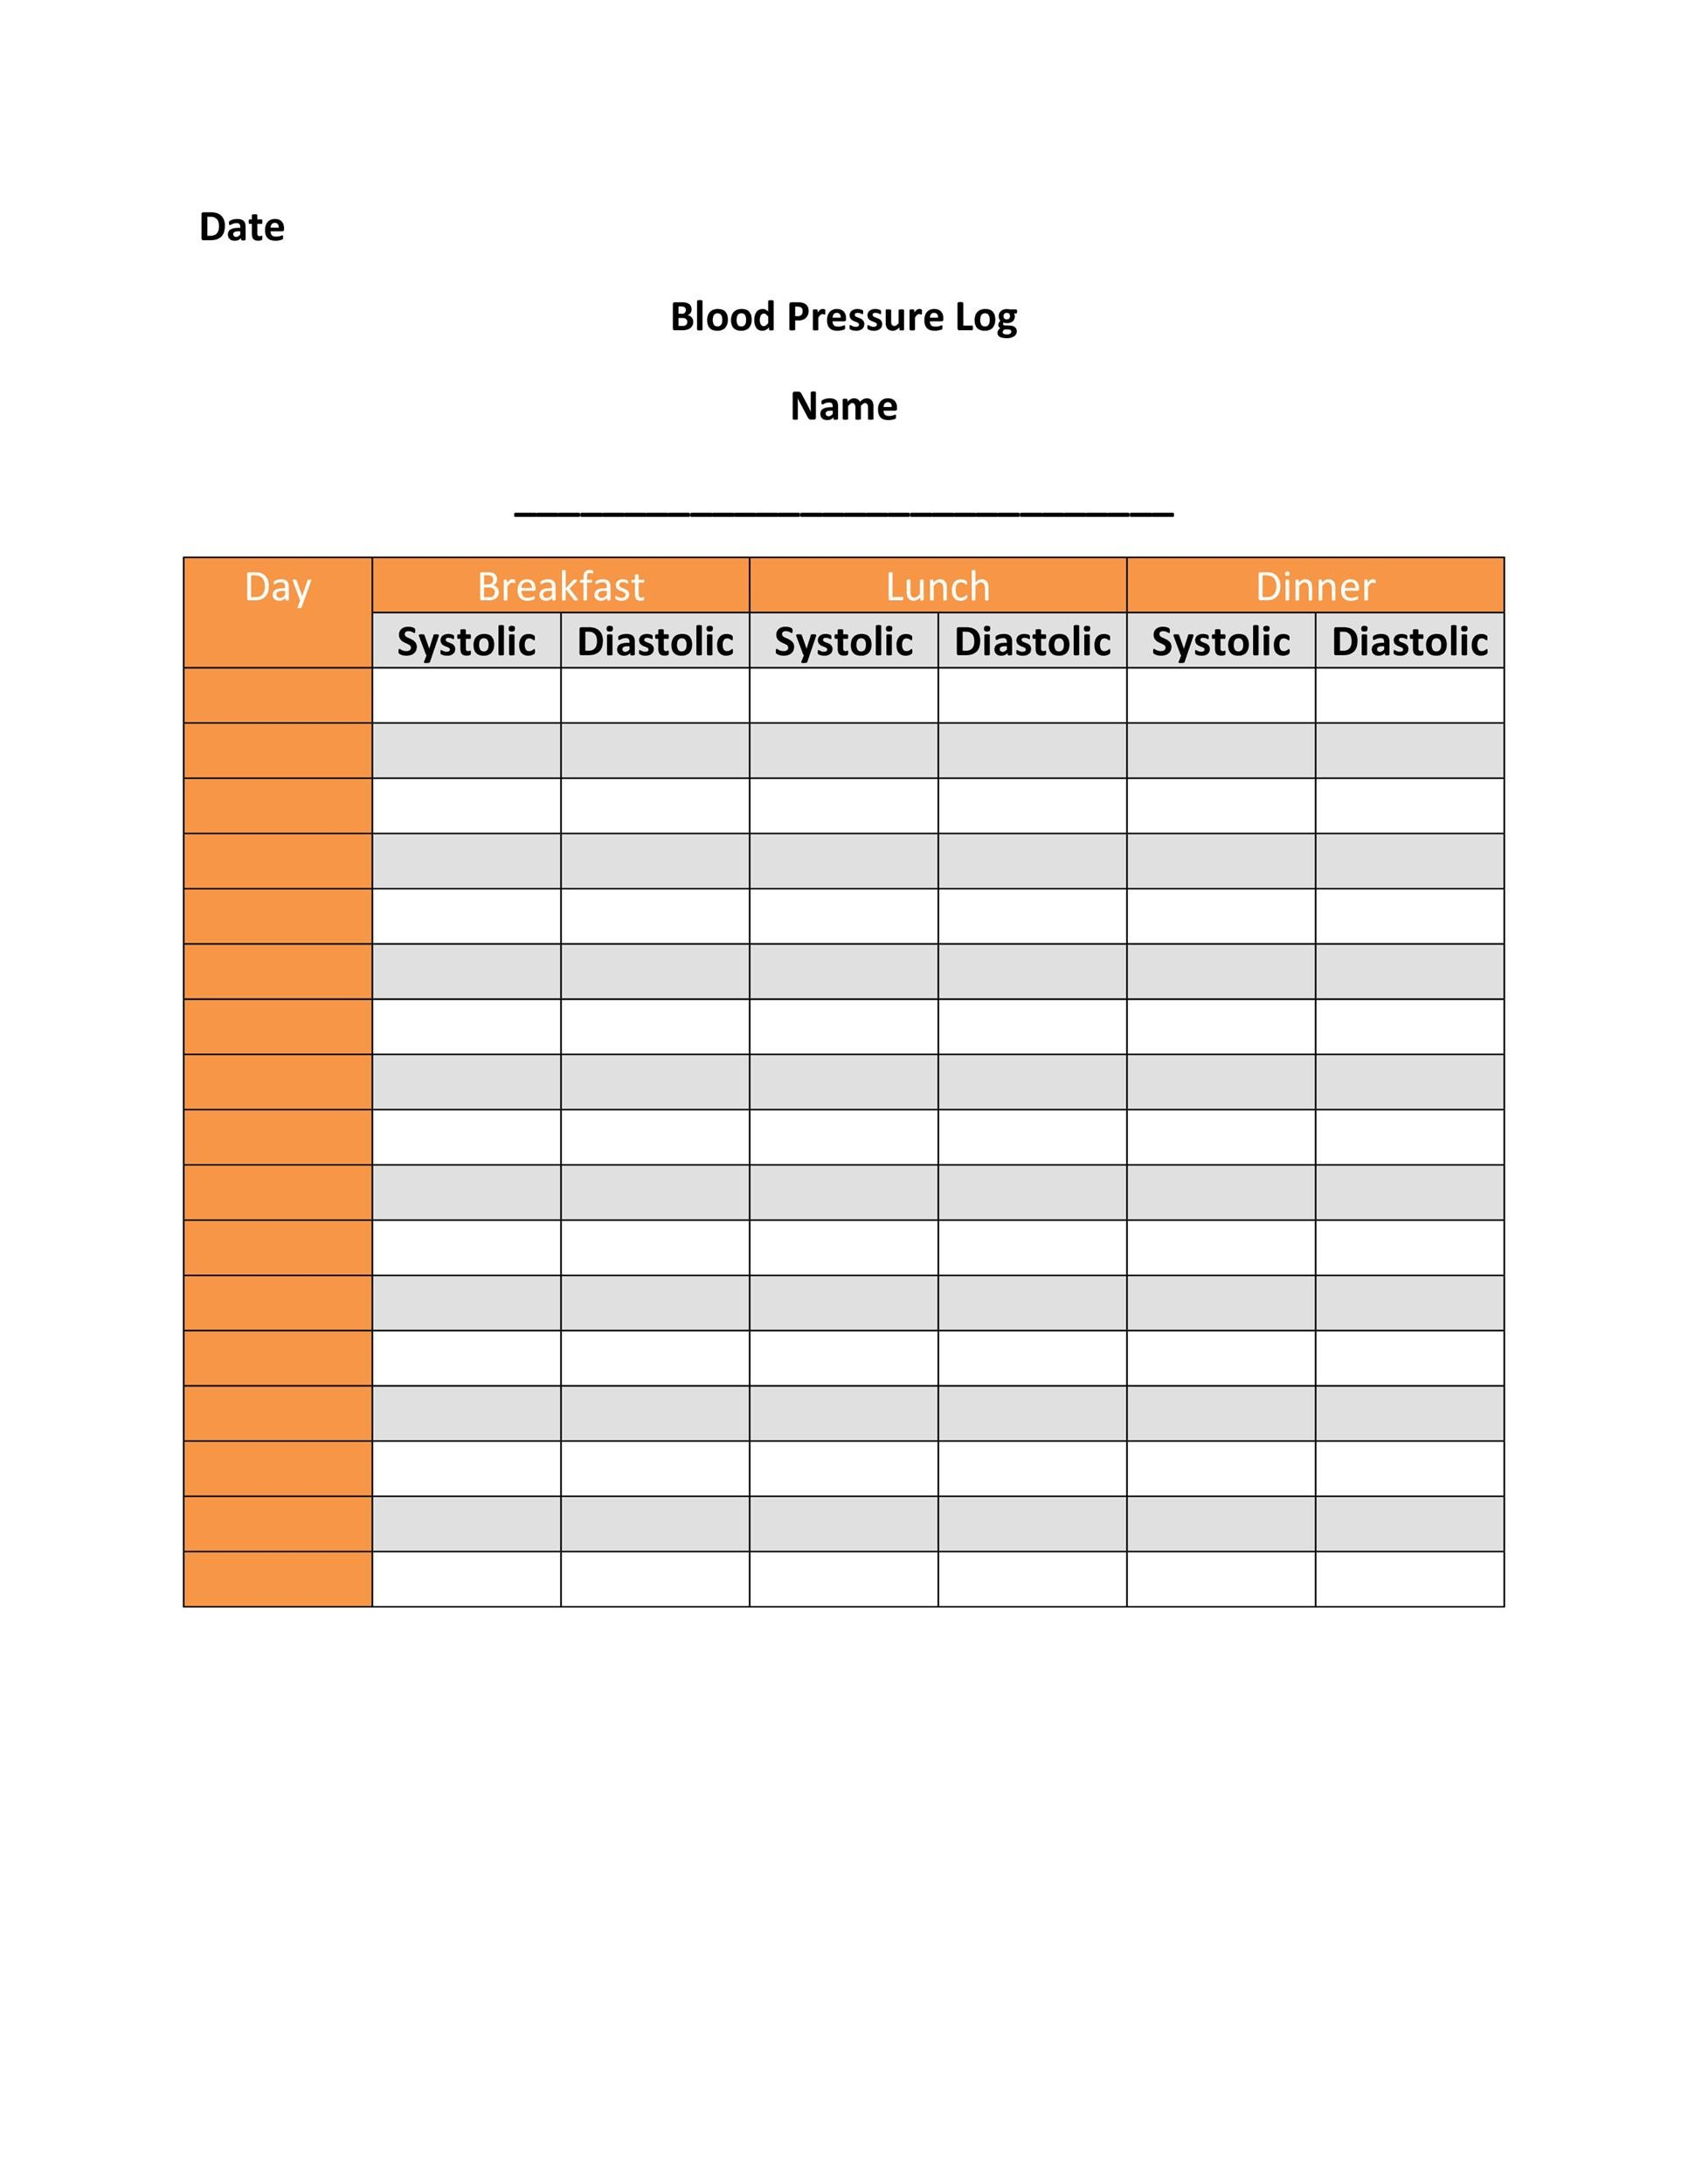 Free Blood Pressure Log Template 24